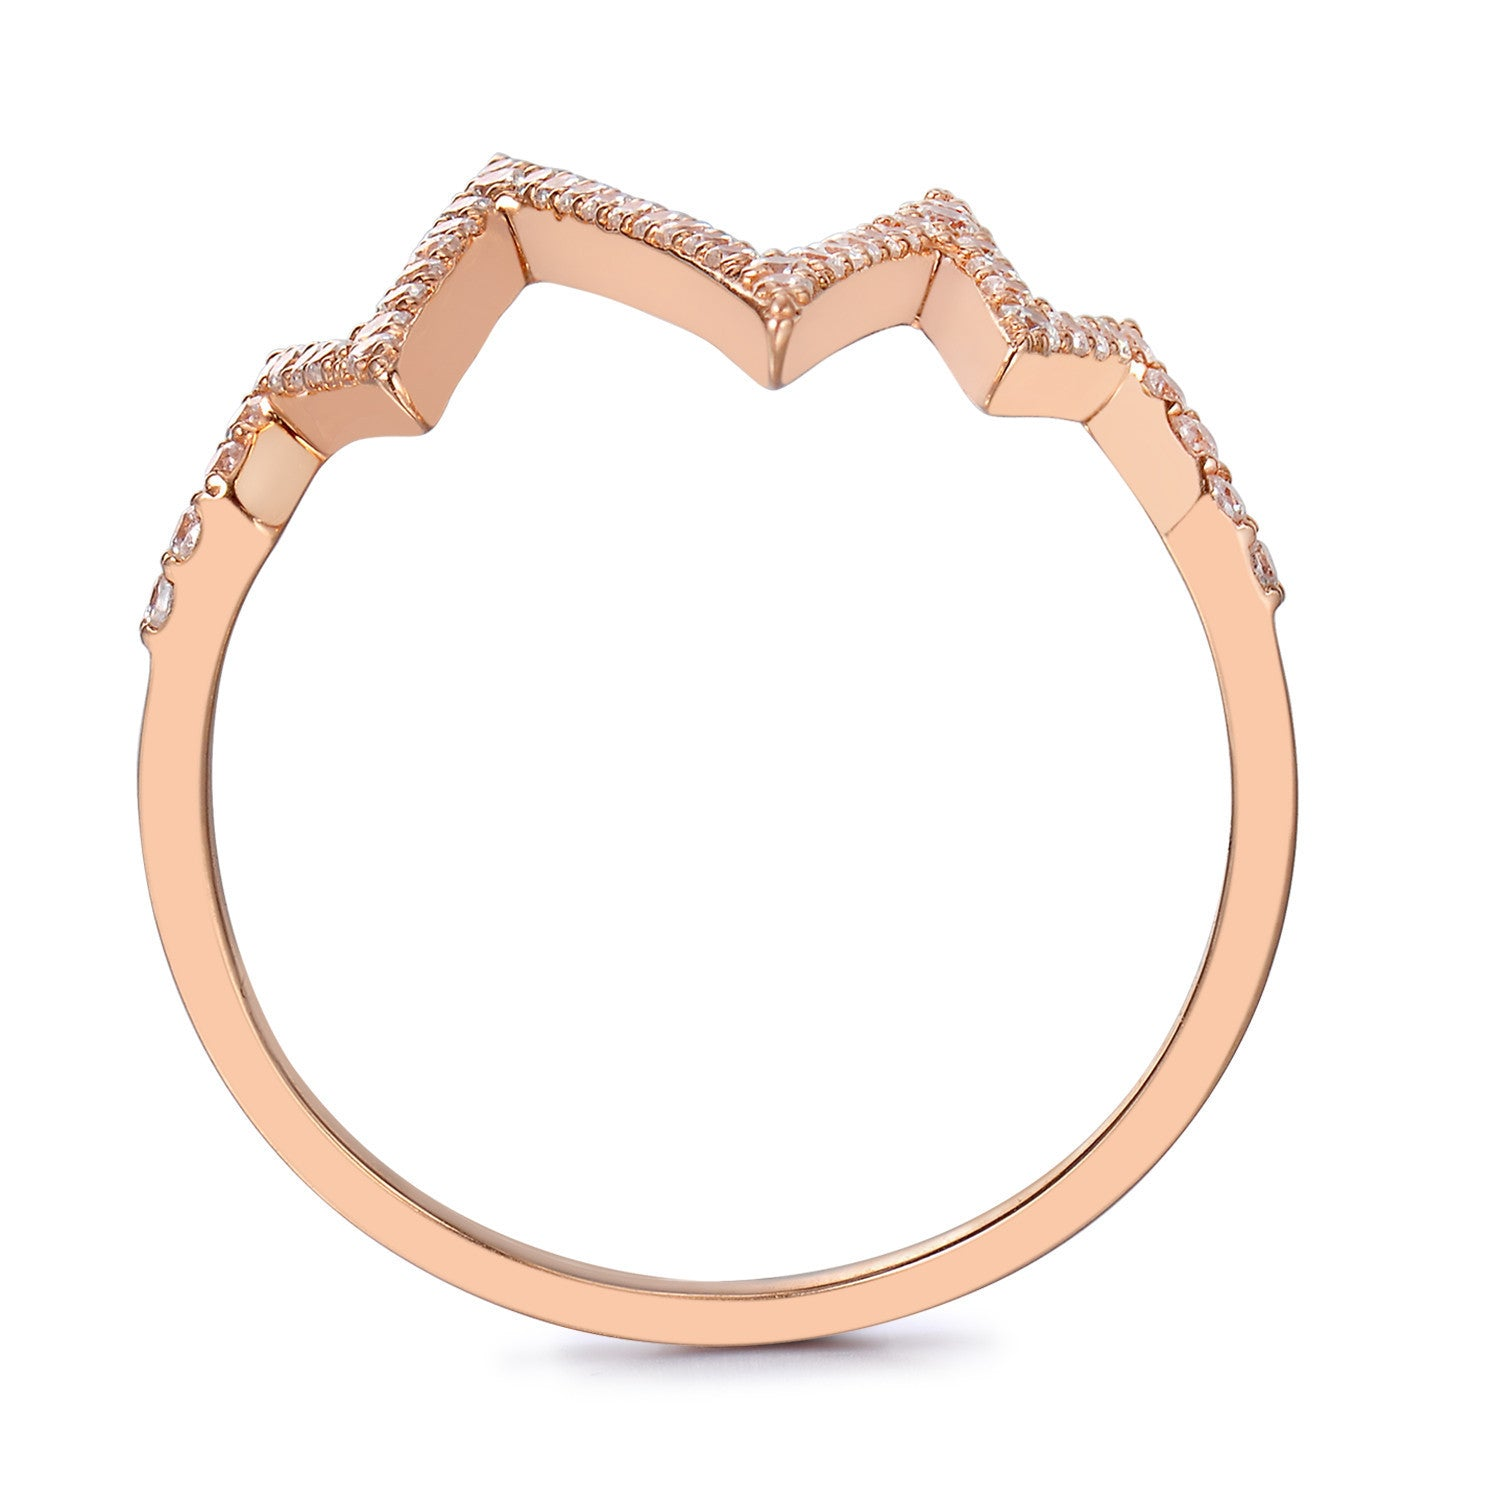 BCRF 14K Rose Gold Heartbeat Diamond Ring